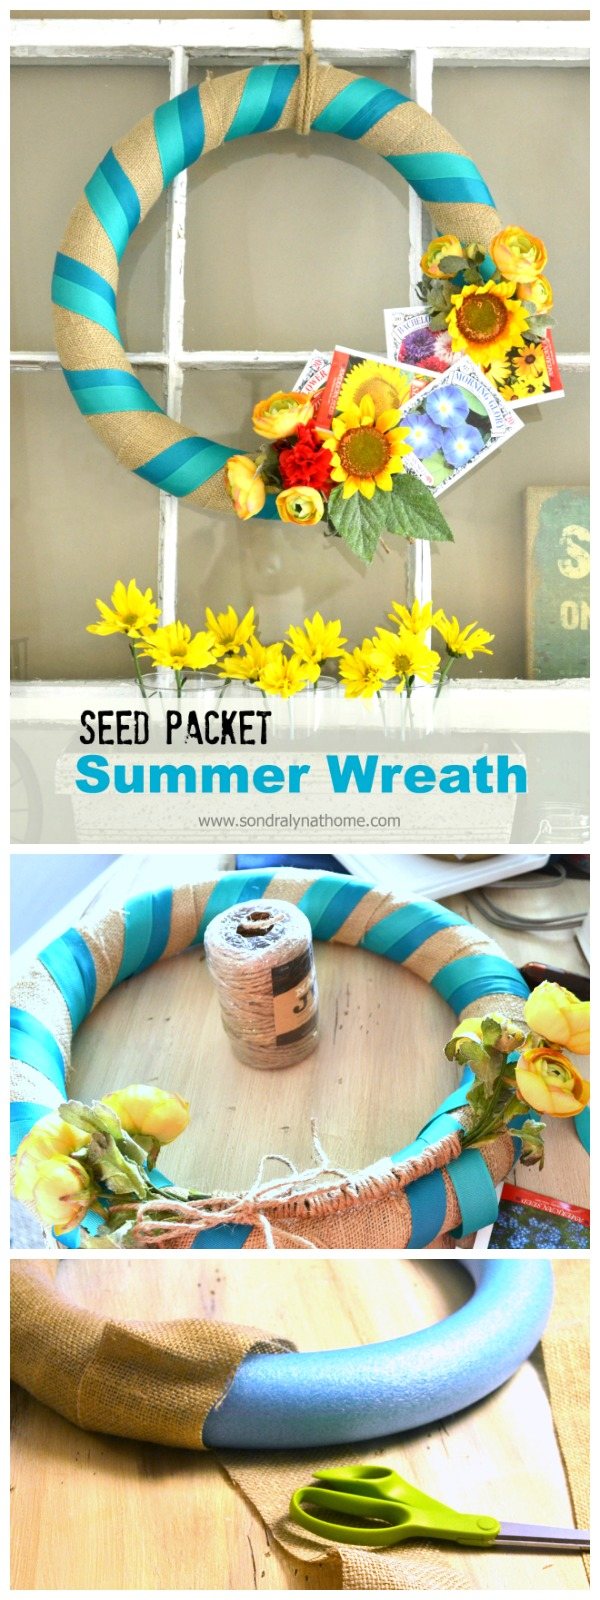 Seed Packet Summer Wreath- from a pool noodle! Sondra Lyn at Home